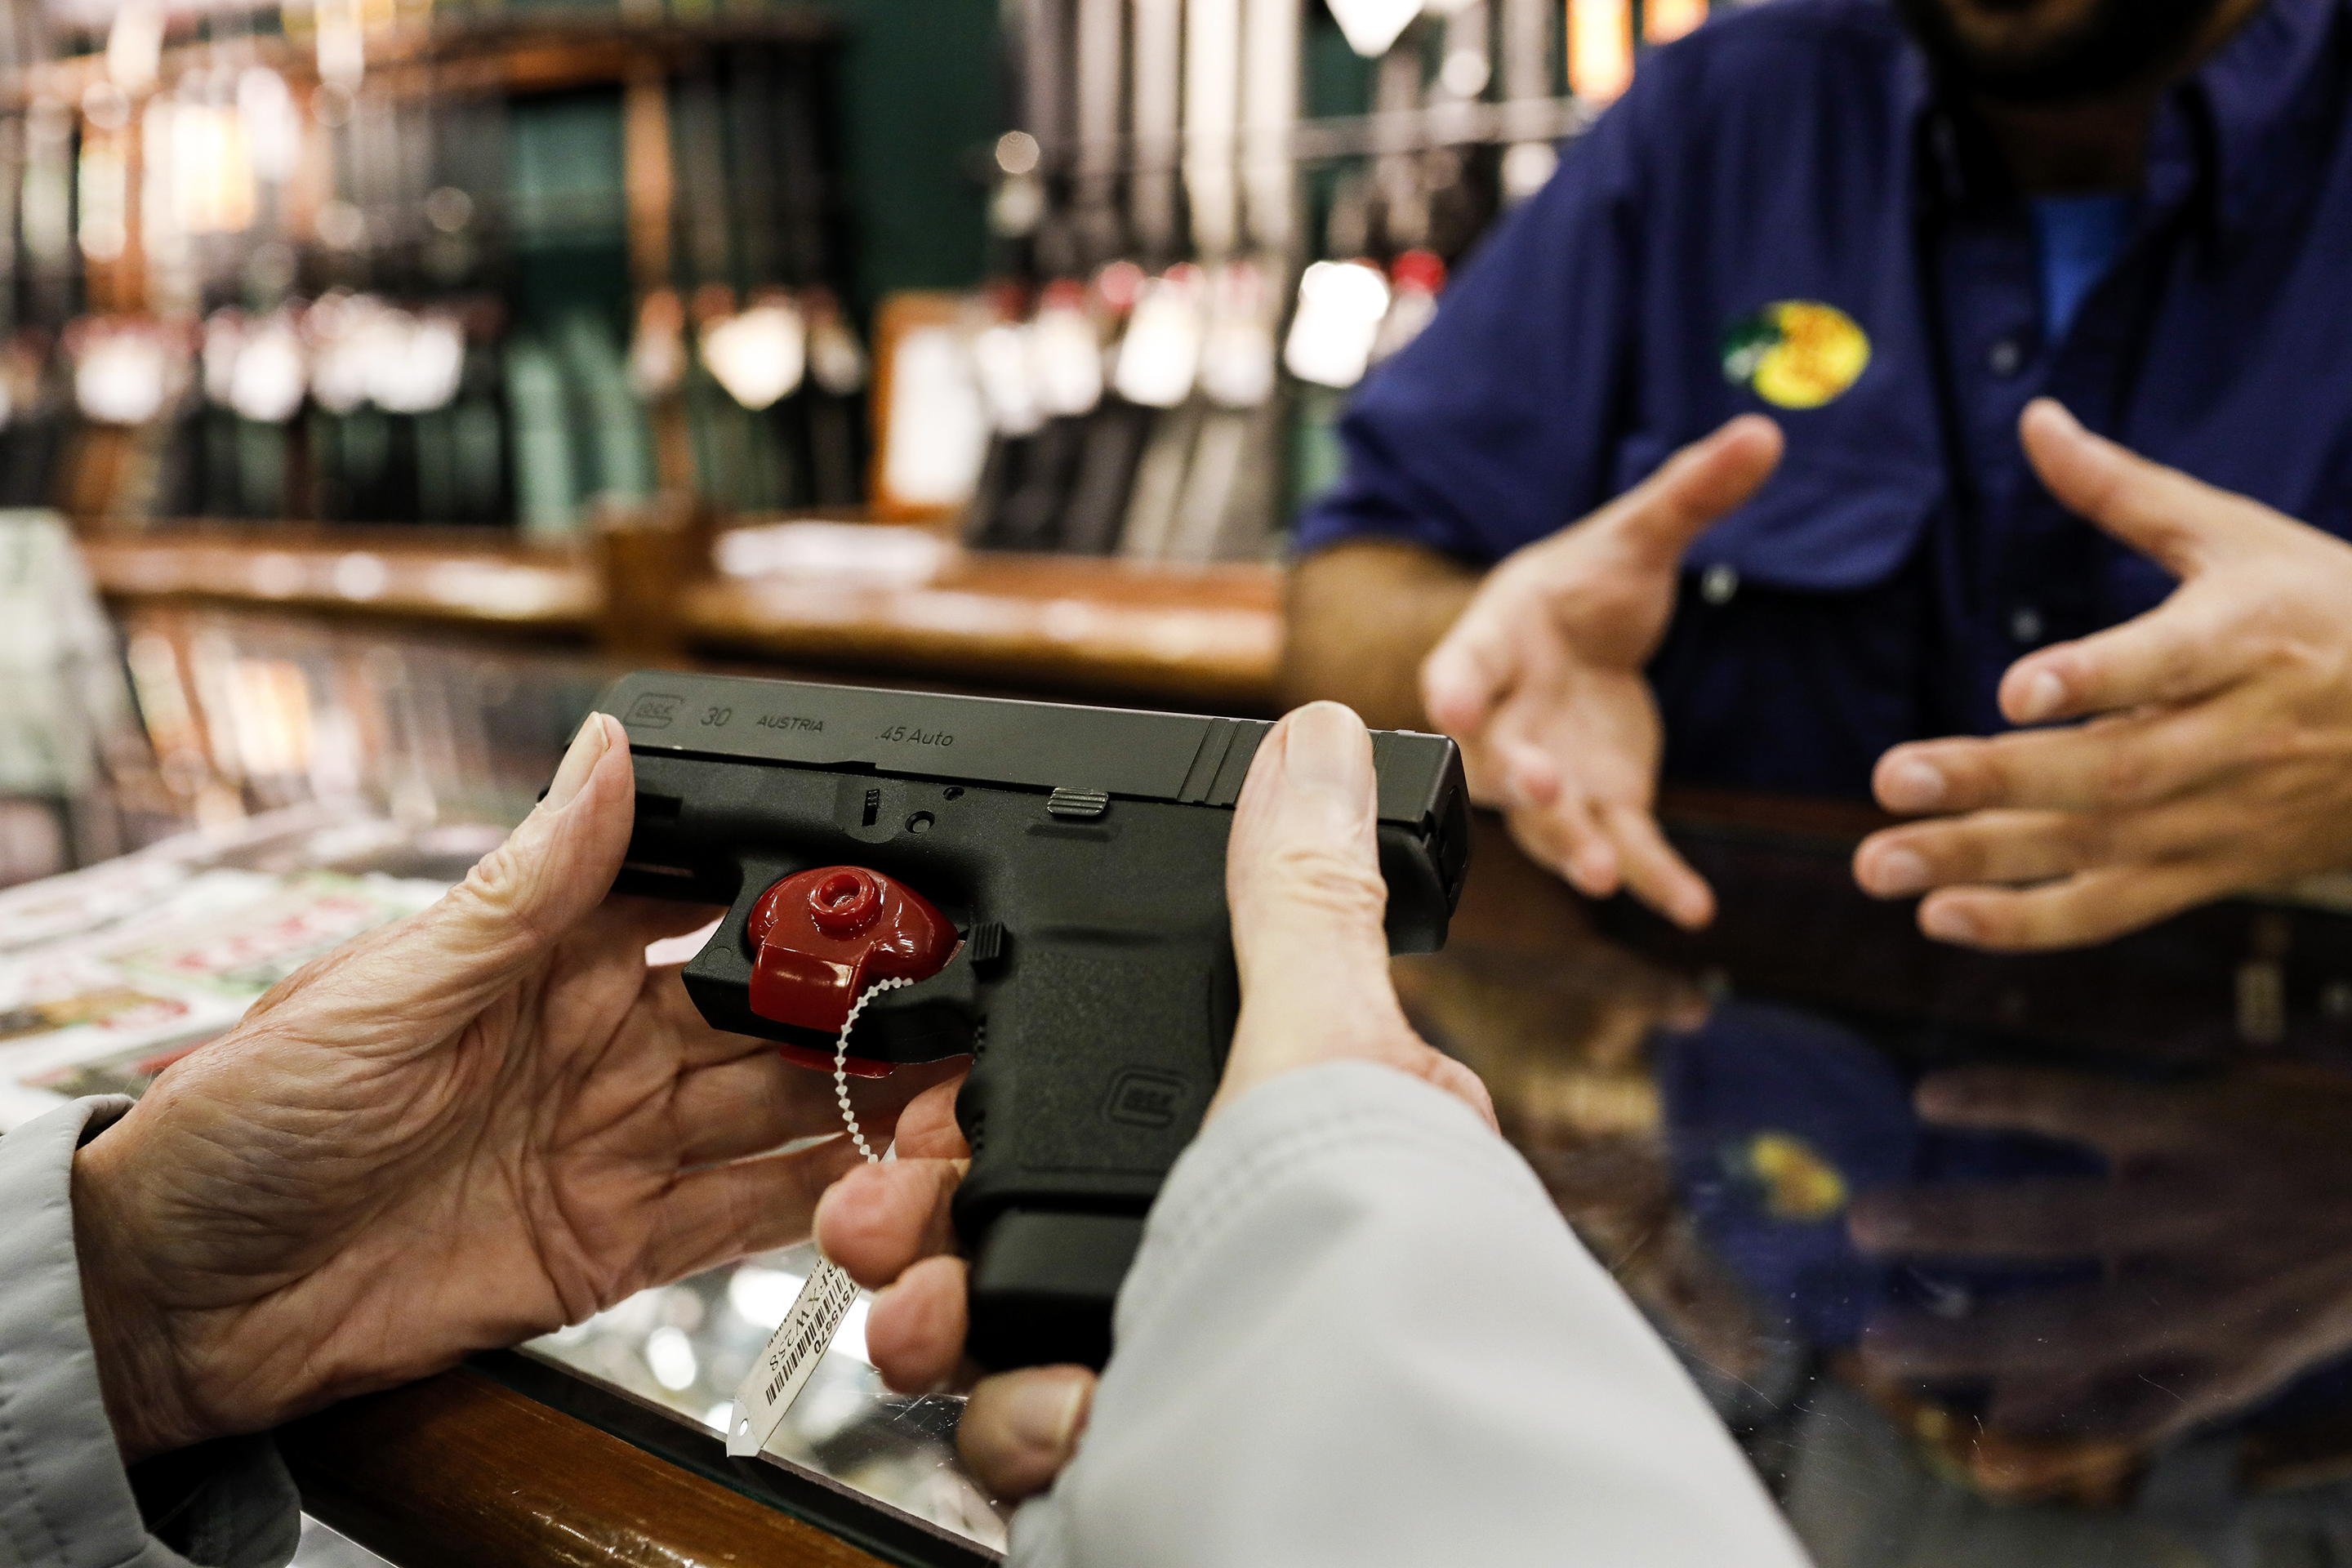 Are Credit Card Companies the Key to Stopping Mass Shooters